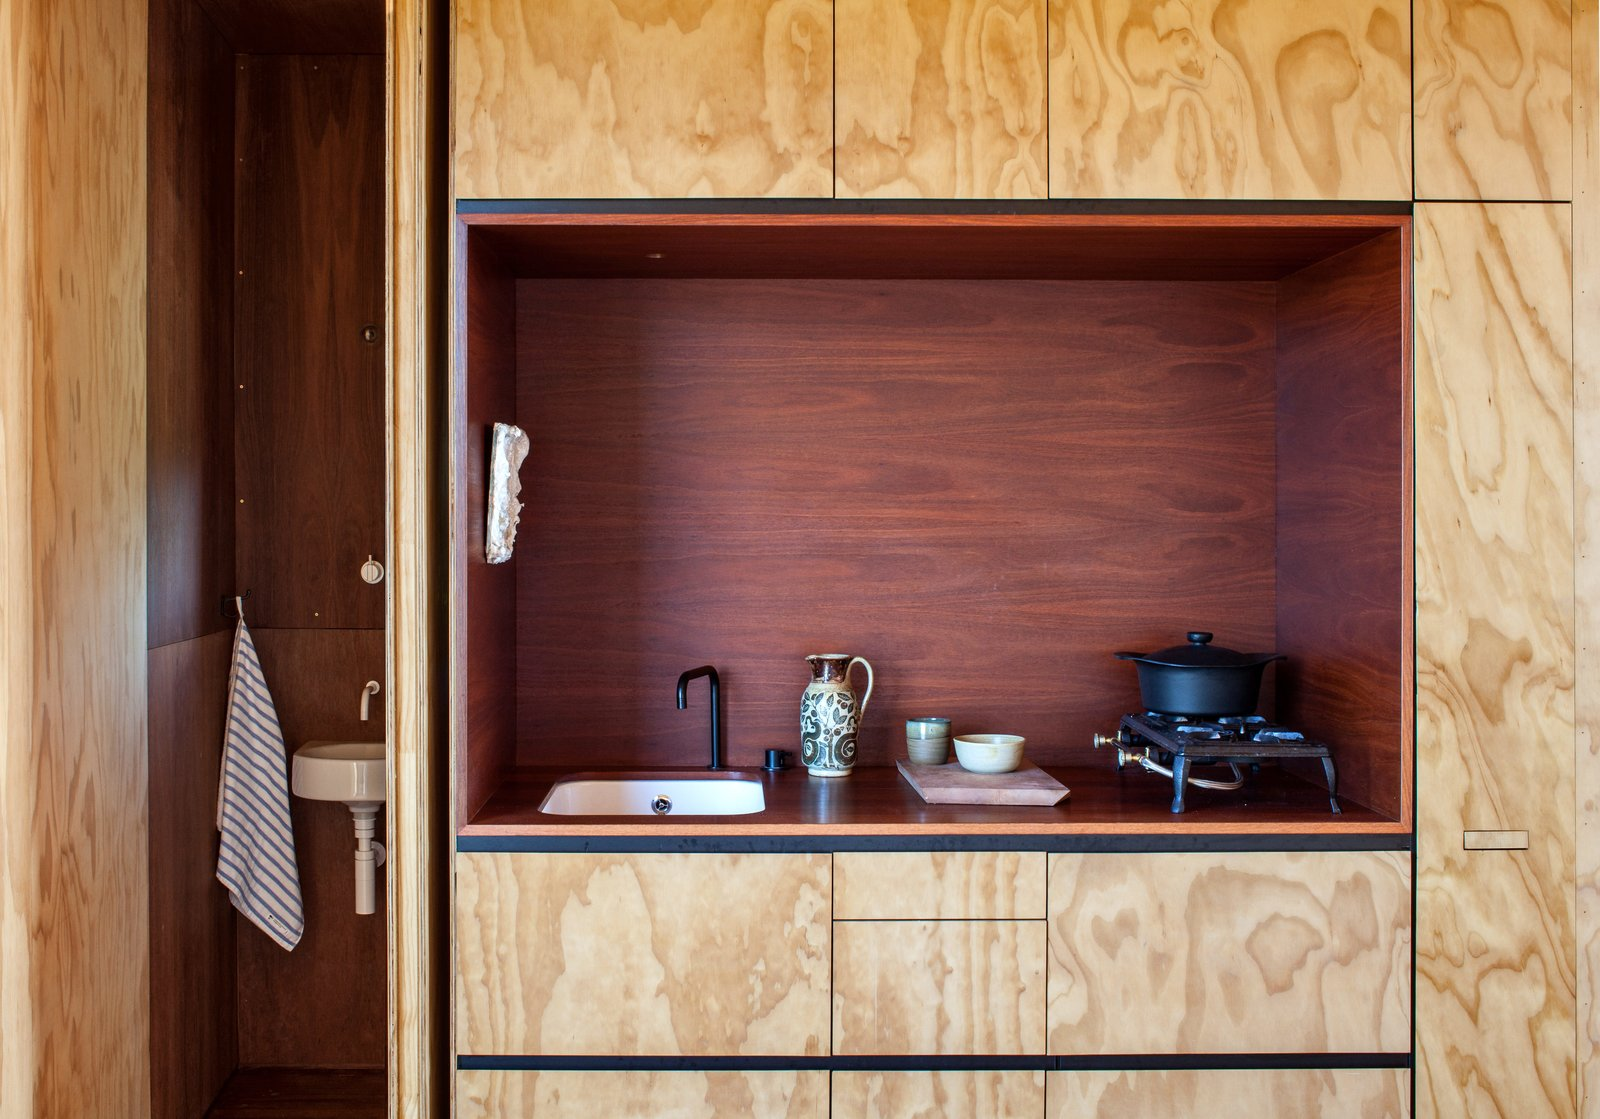 The other structure, lined in plywood, recalls the simplicity of New Zealand's traditional bachs, or seaside cabins. Oiled jarrah eucalyptus clads the kitchen alcove. In the bathroom, Vola's Arne Jacobsen tapware joins an Architec basin by Duravit.